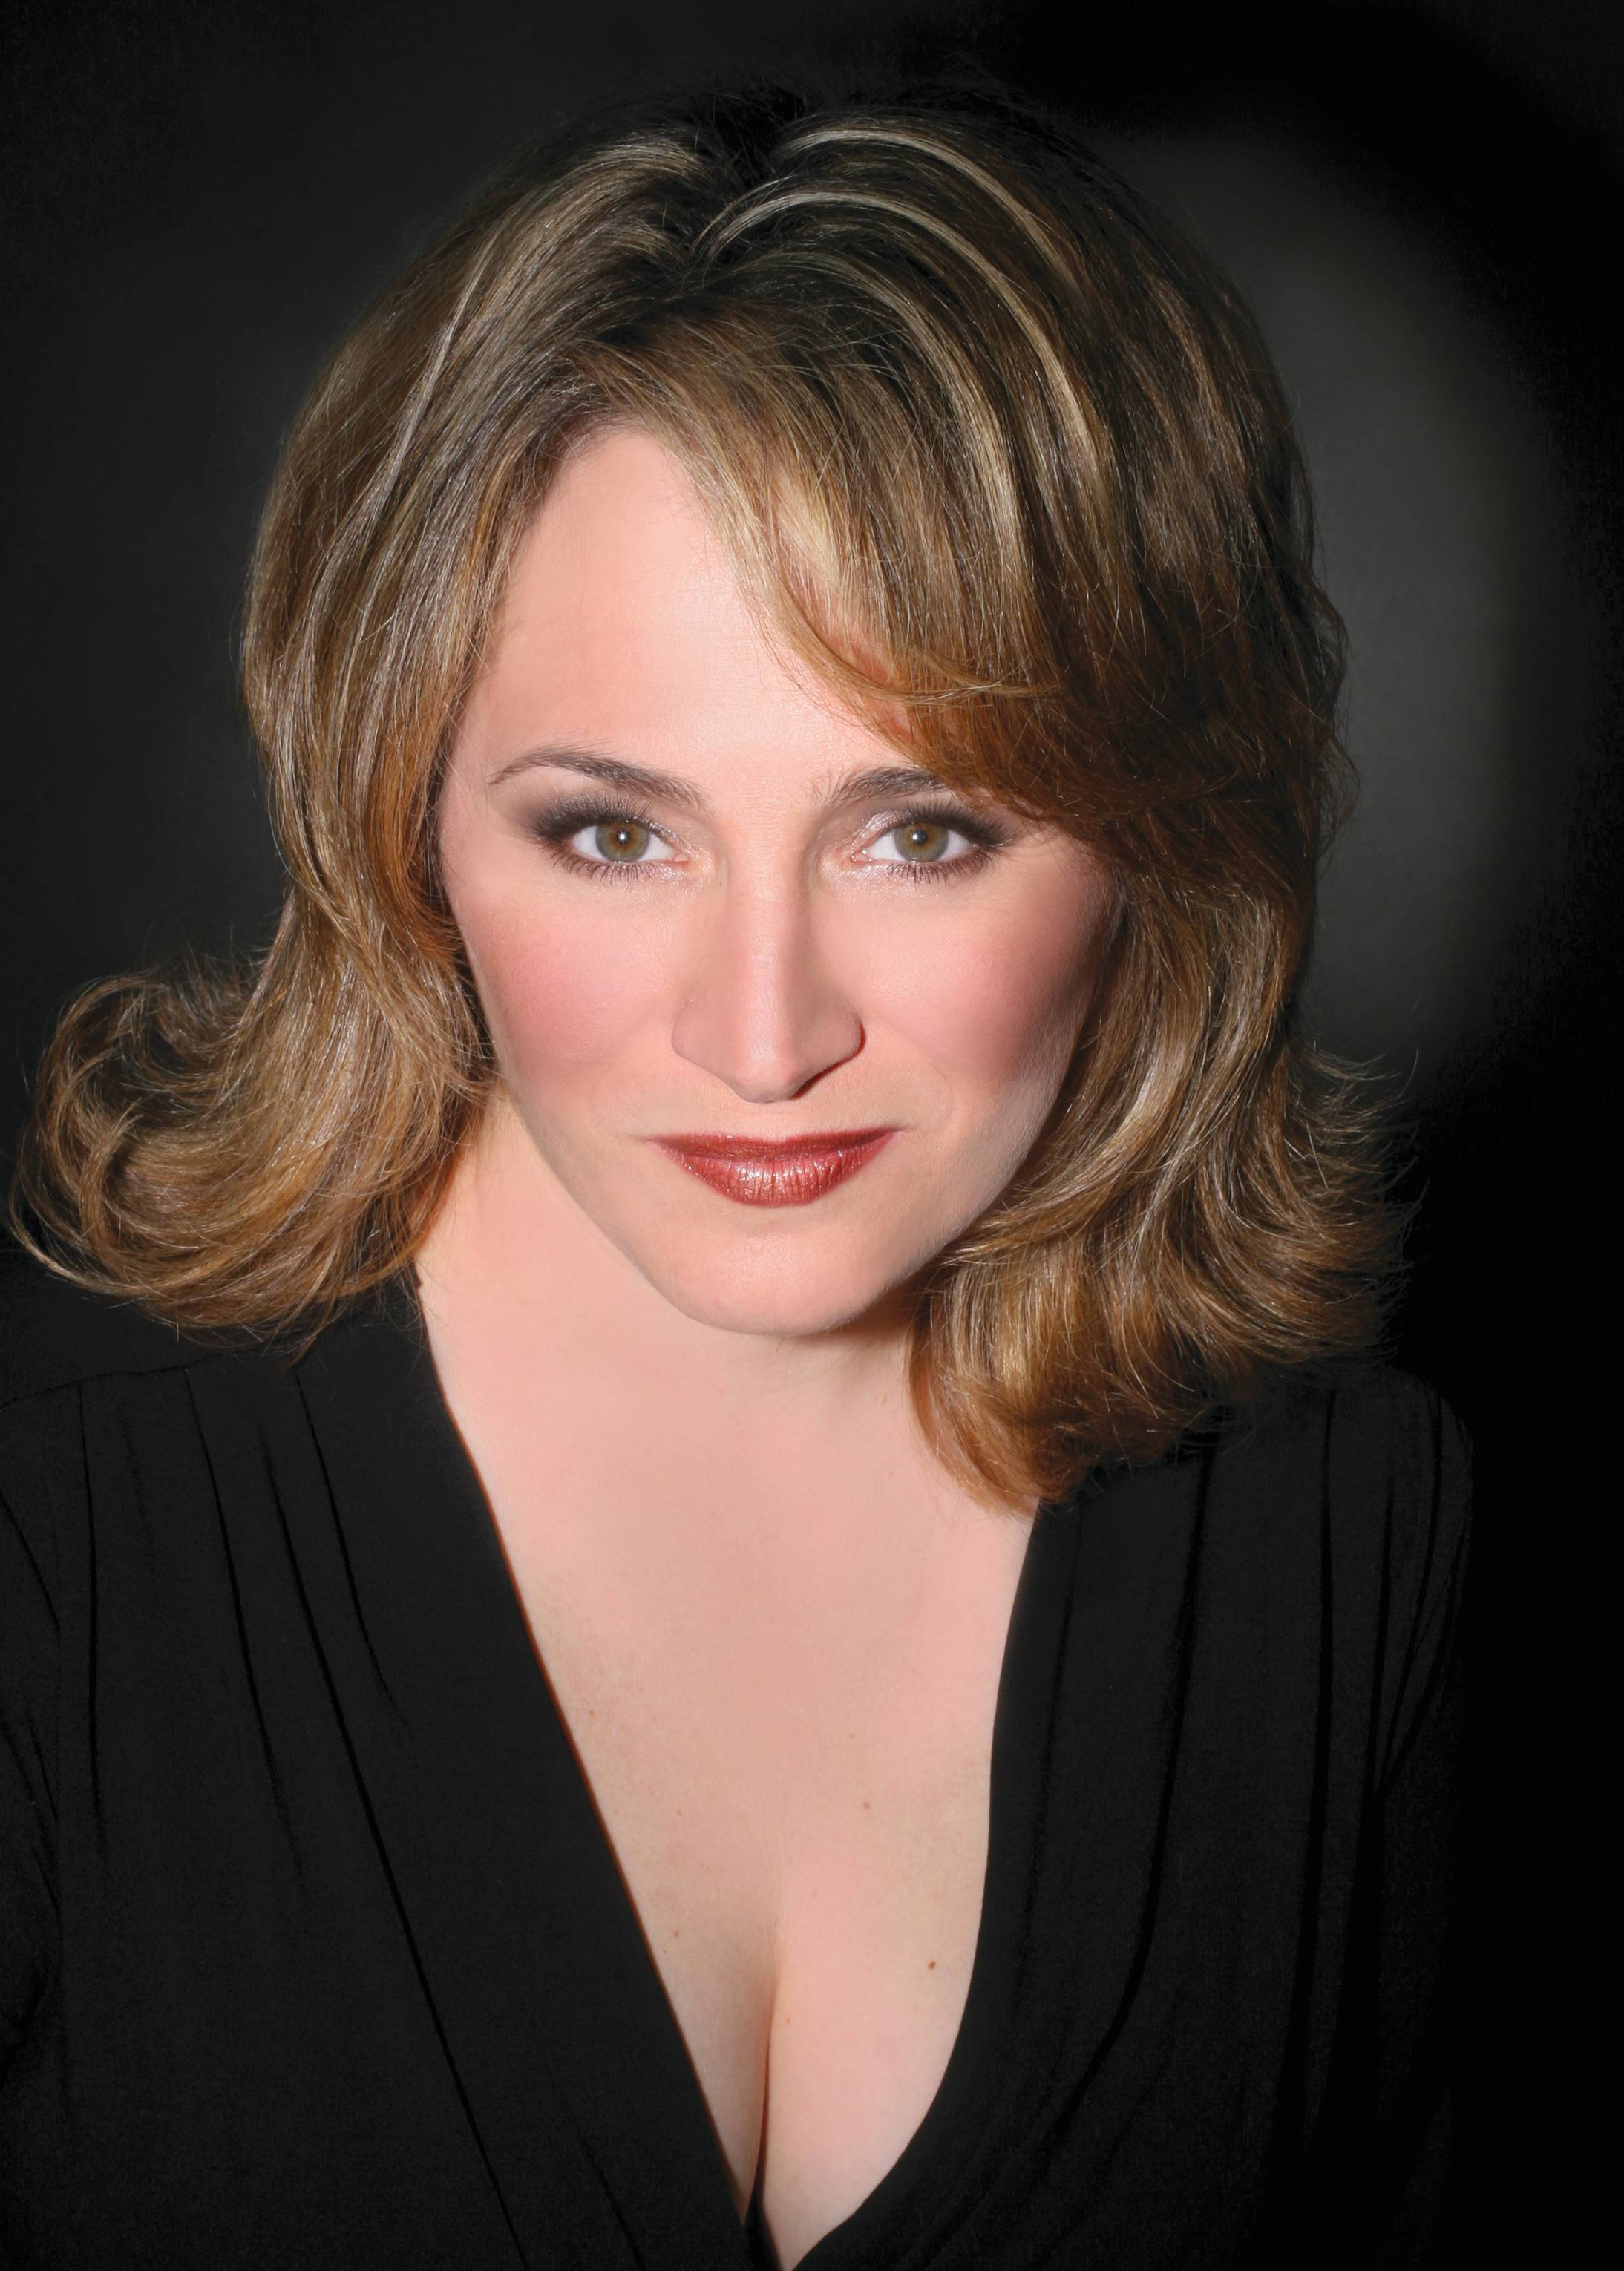 Opera singer Patricia Racette is scheduled to perform at Ravinia on Aug. 2.